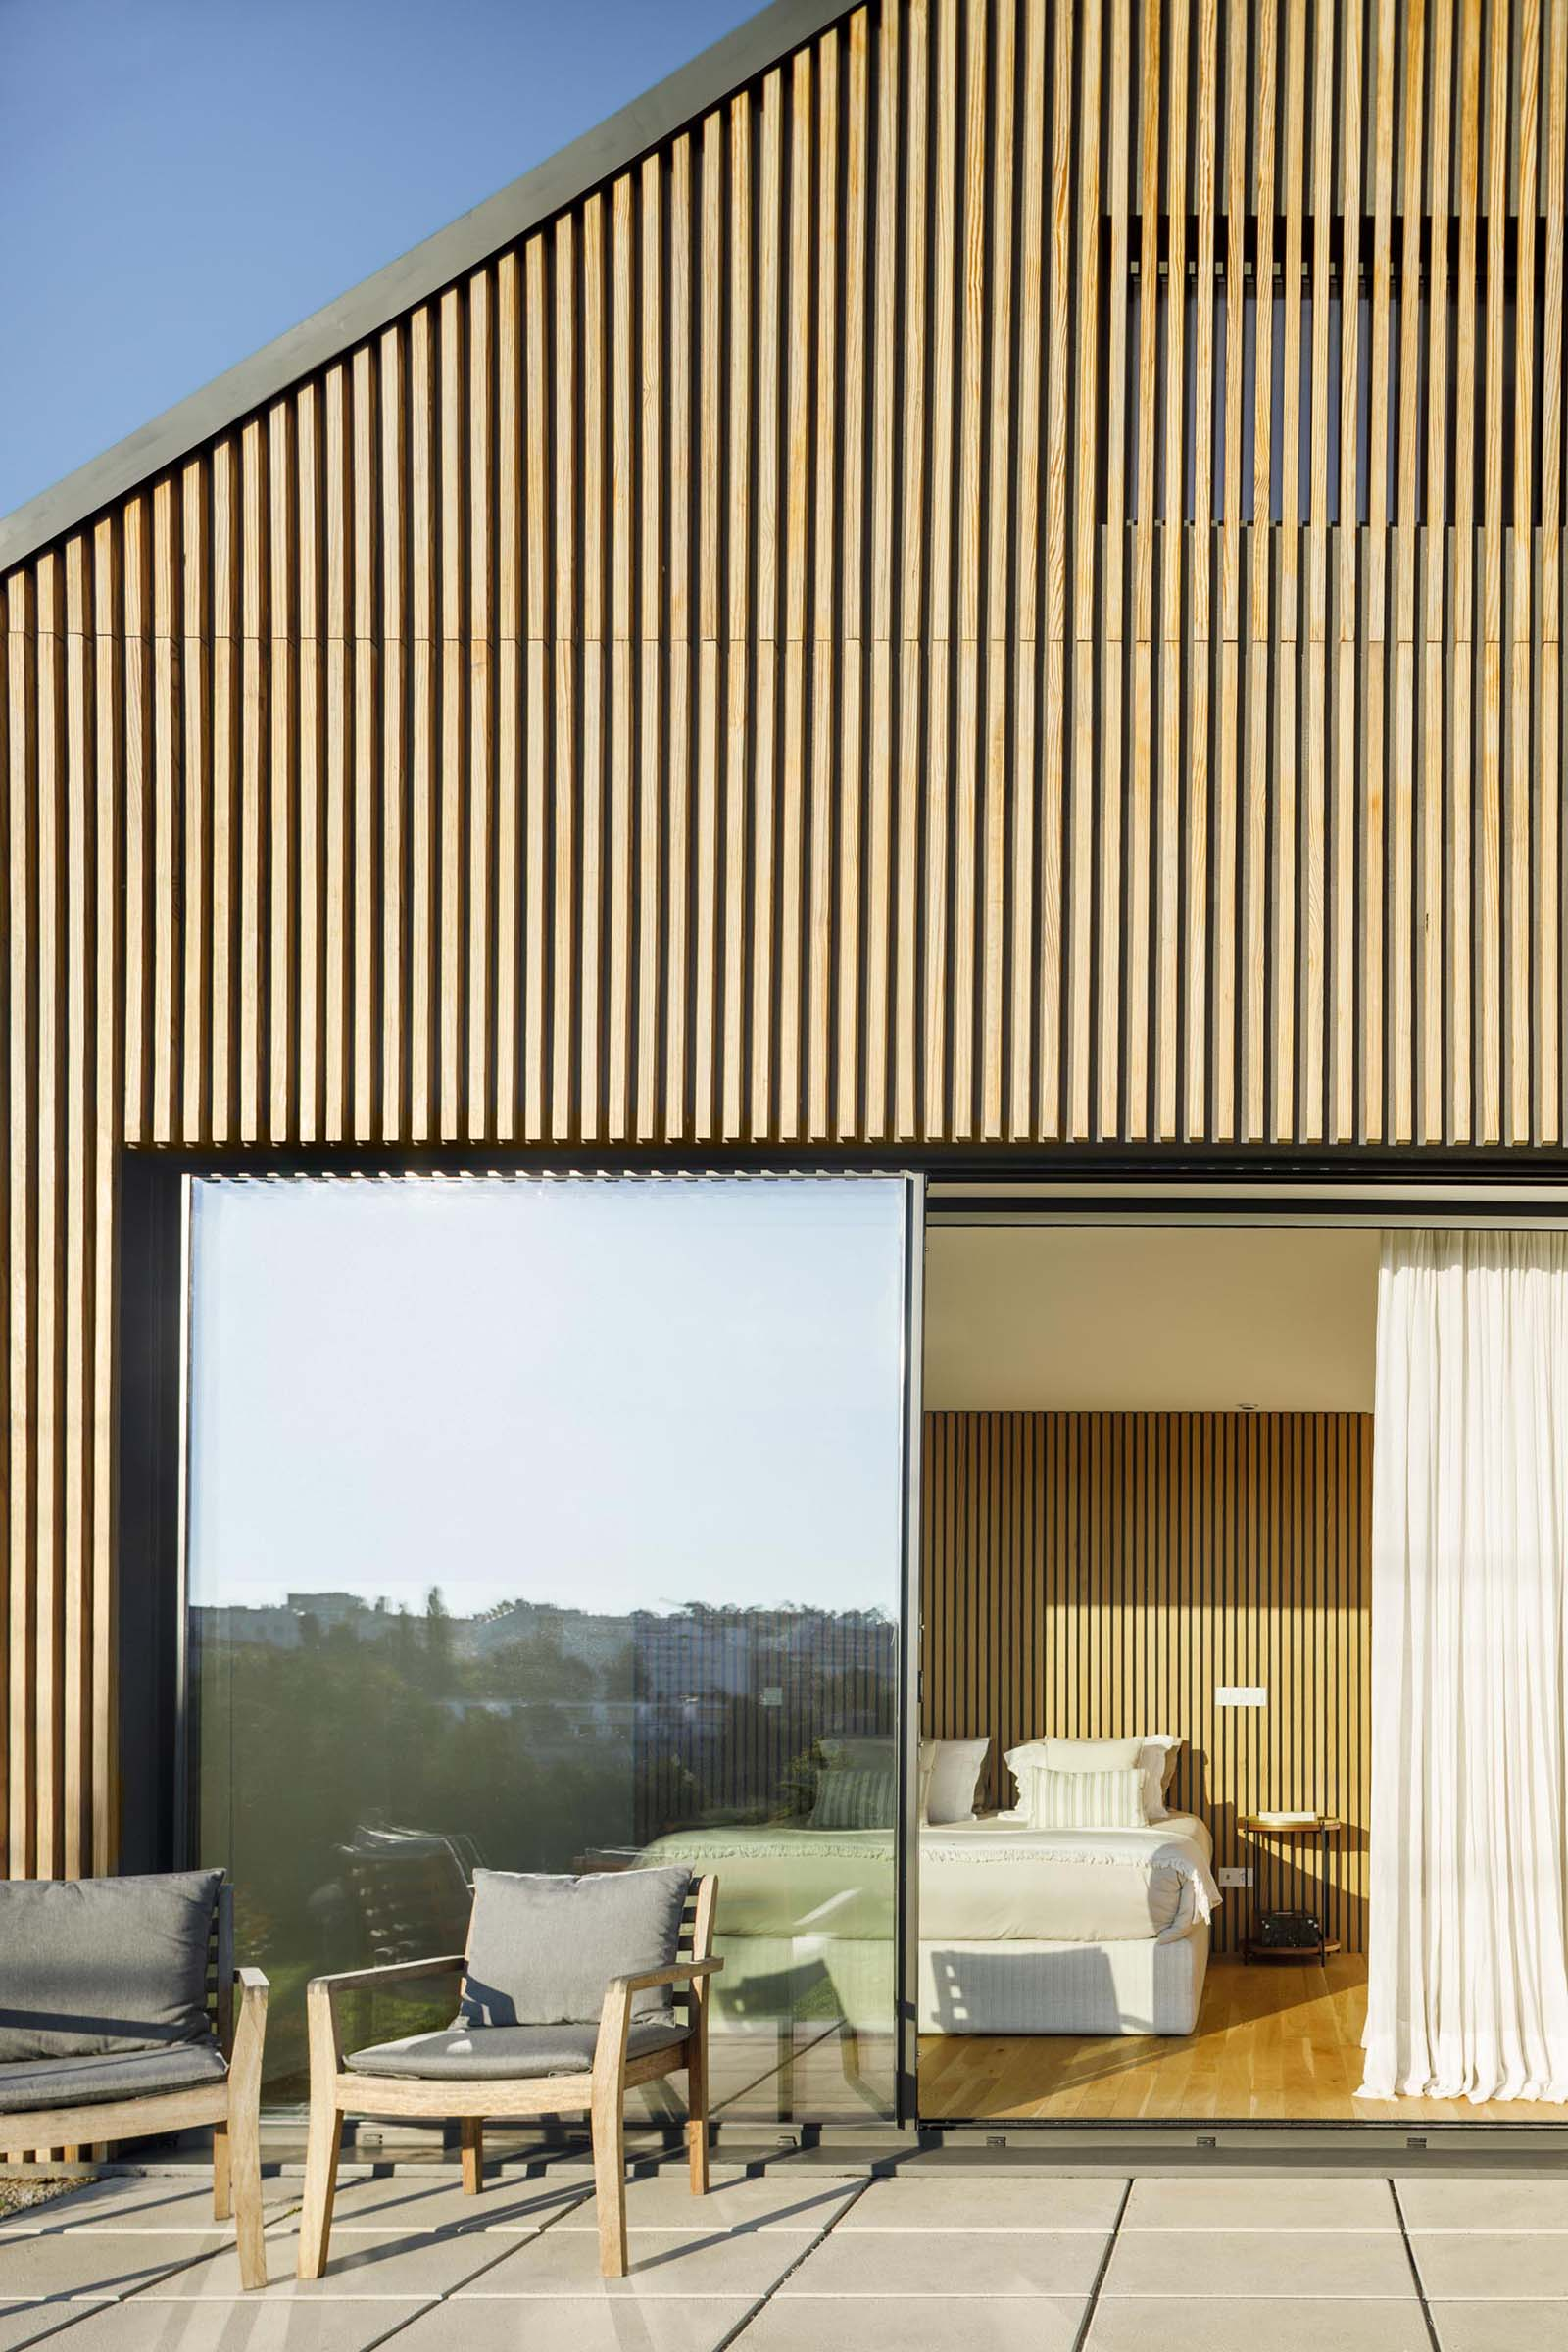 A modern house with a wood slat exterior and large sliding glass doors.